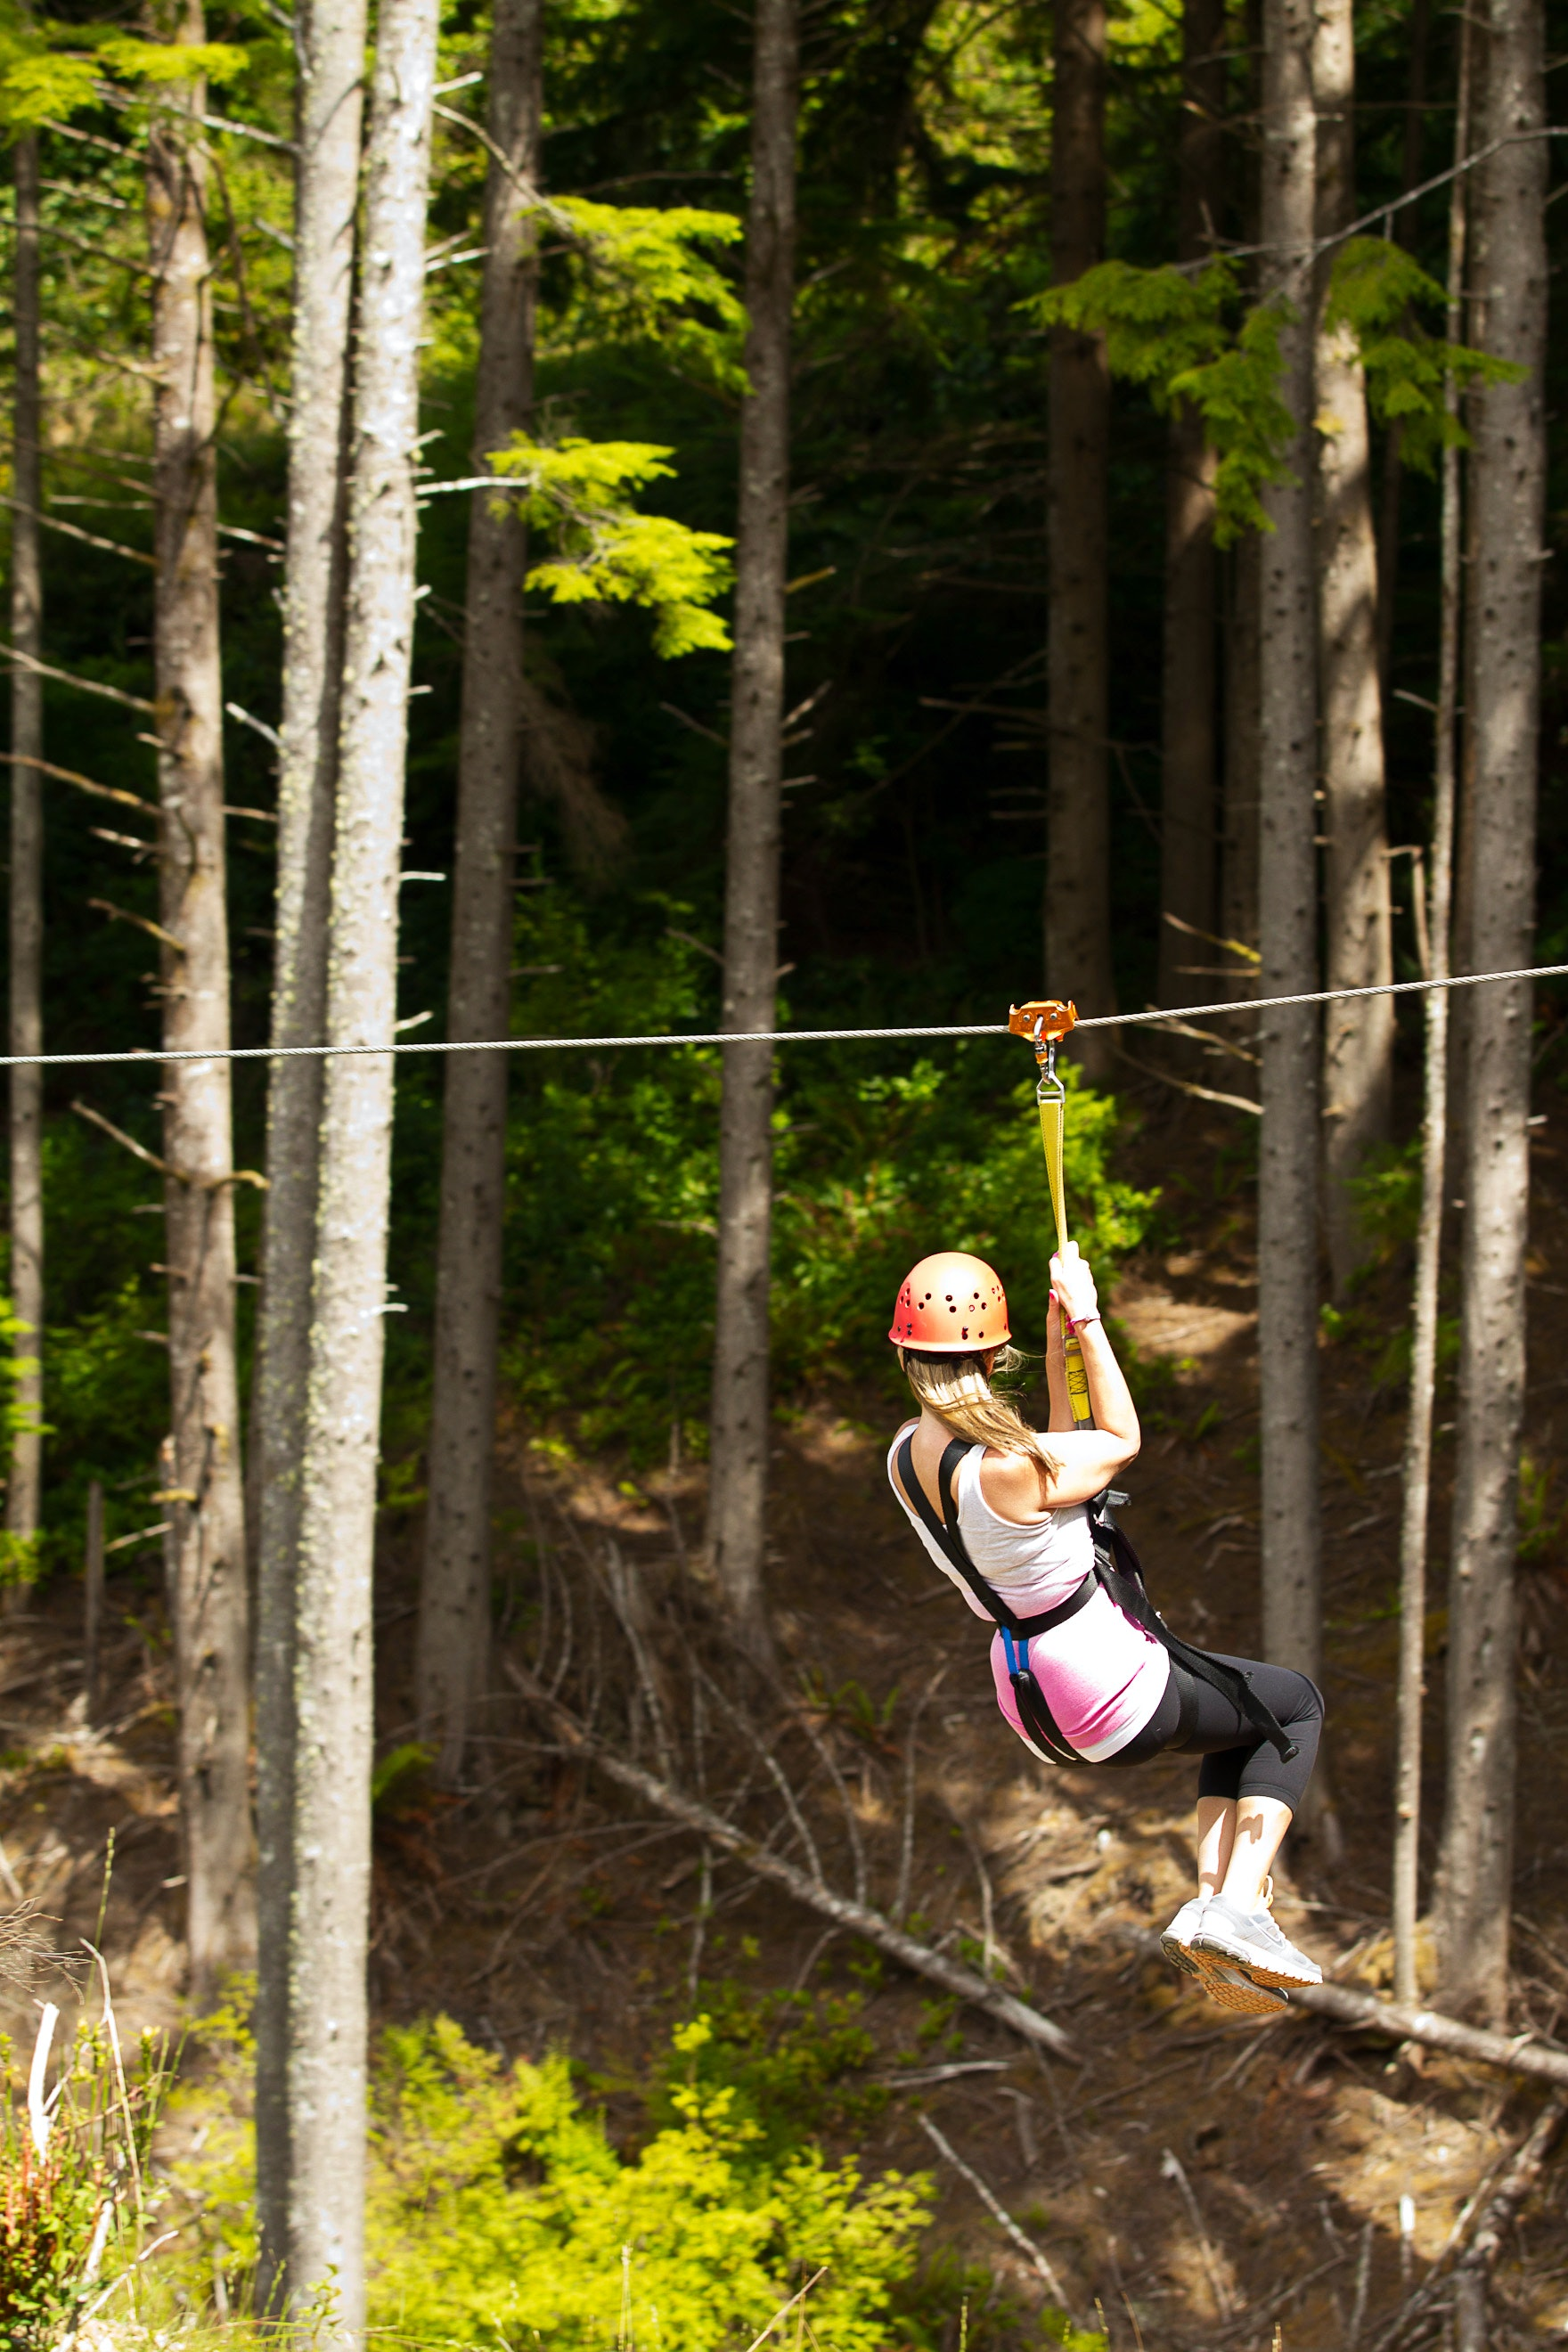 A woman ziplining through the forest in Oregon